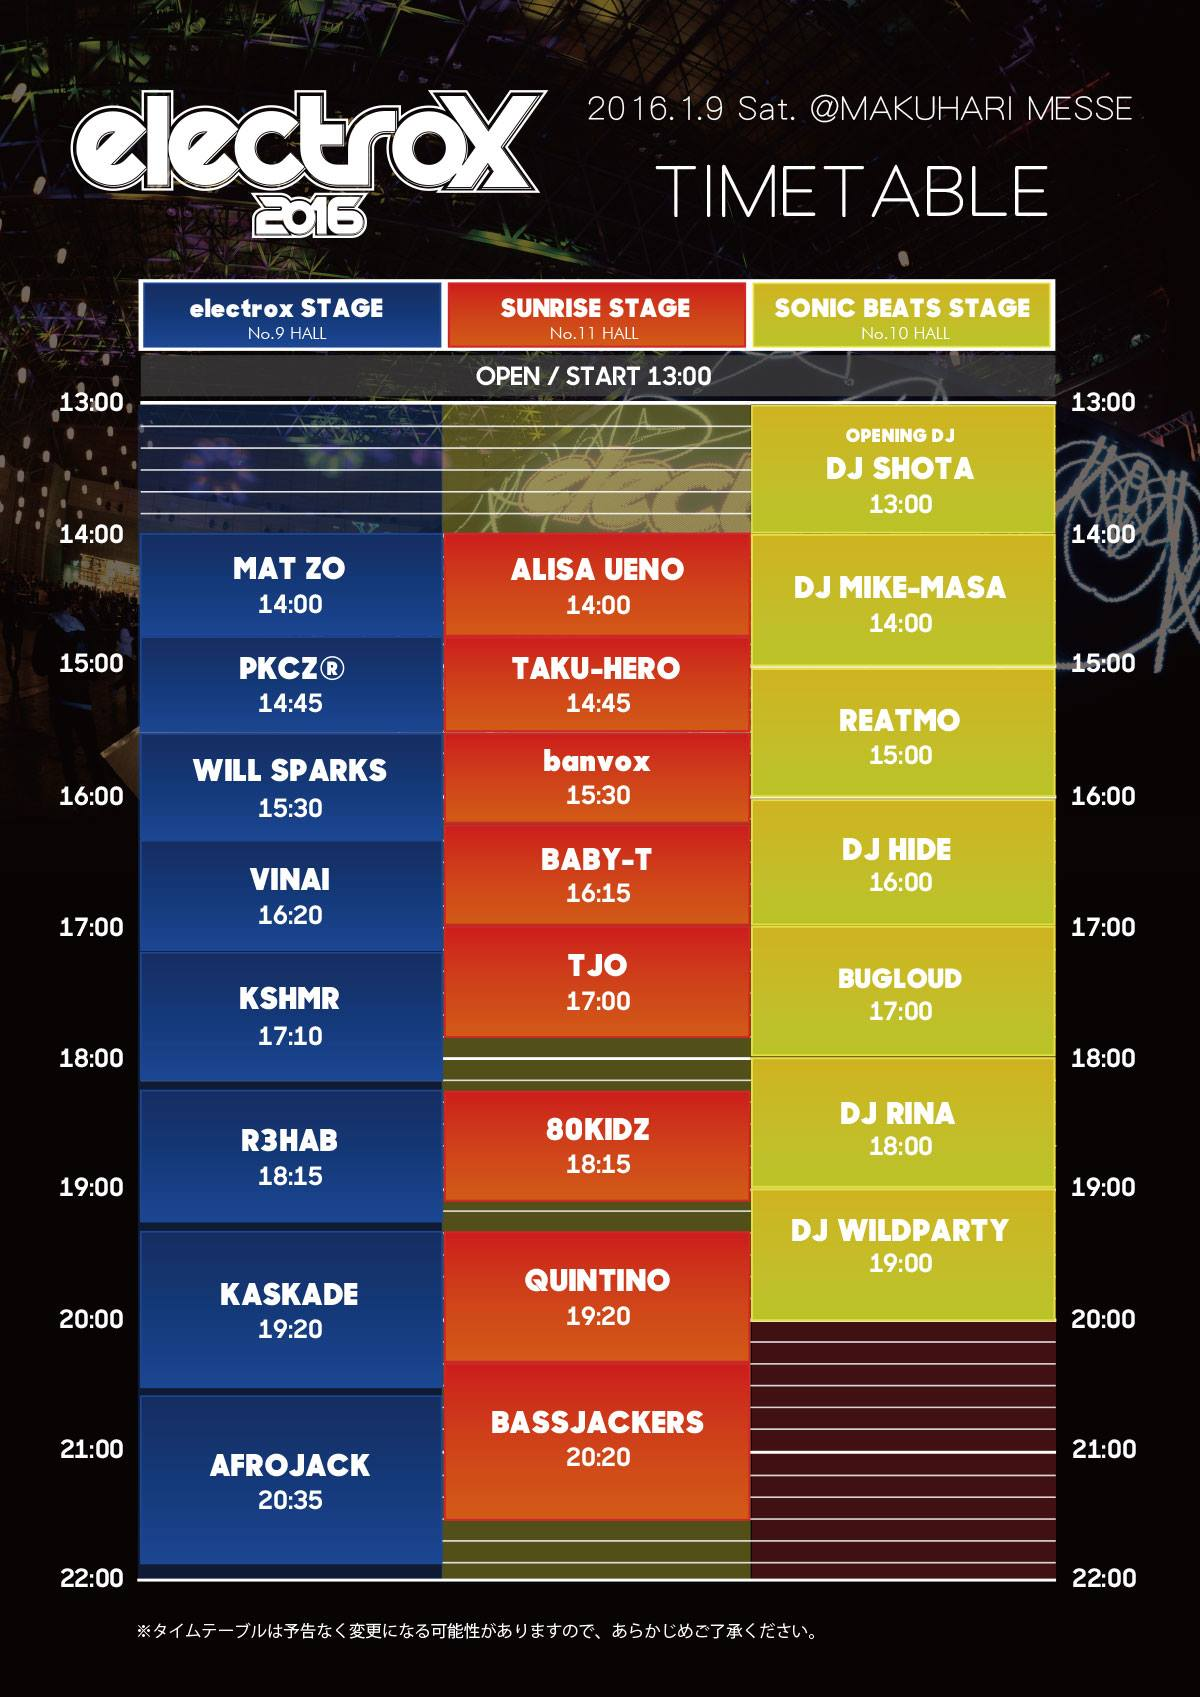 electrox 2016 TIMETABLE